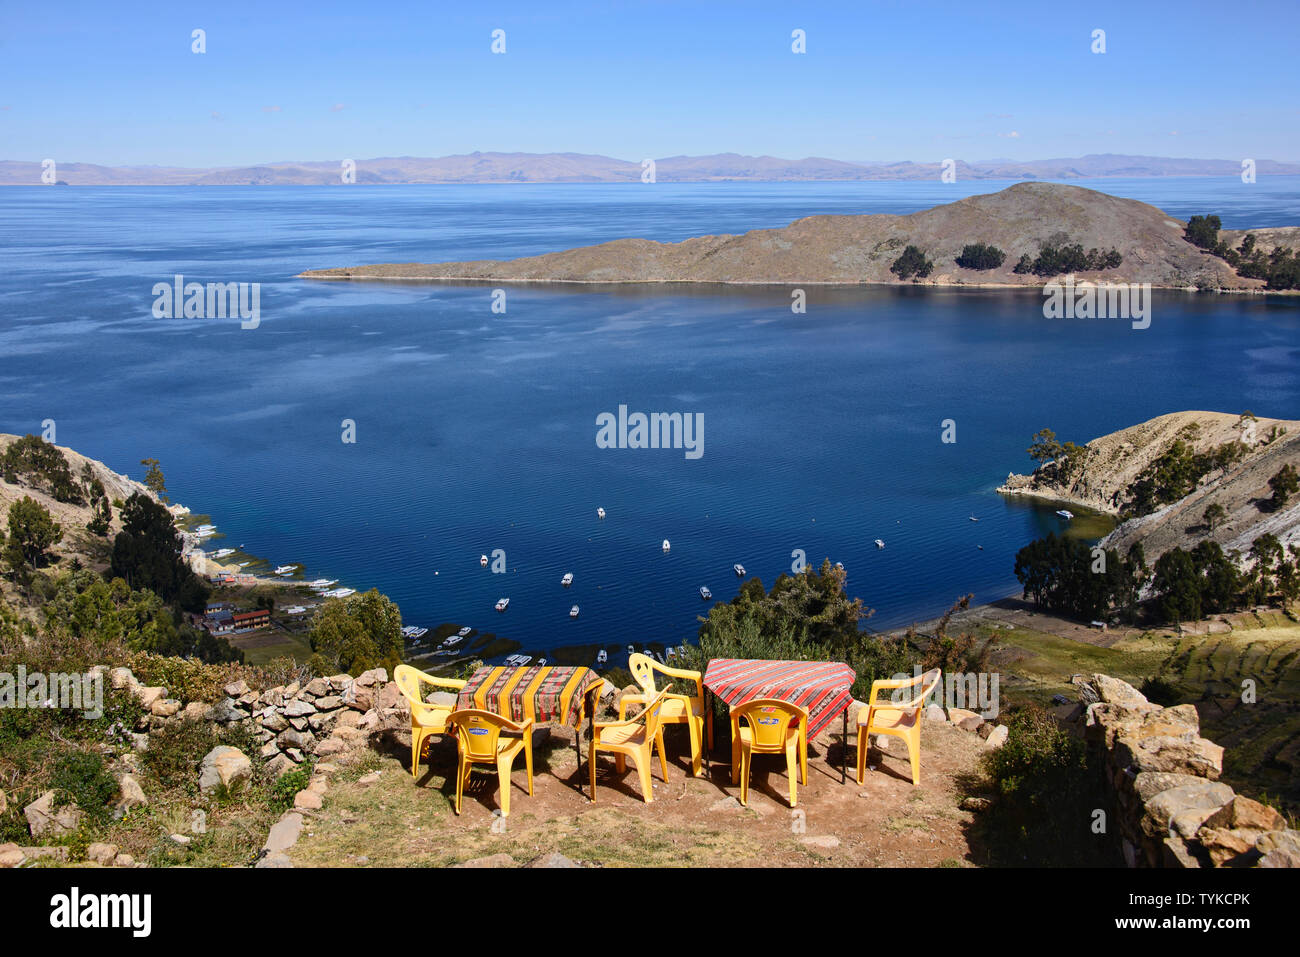 Boats in the Playa Japapi bay on Isla del Sol, Lake Titicaca, Bolivia Stock Photo